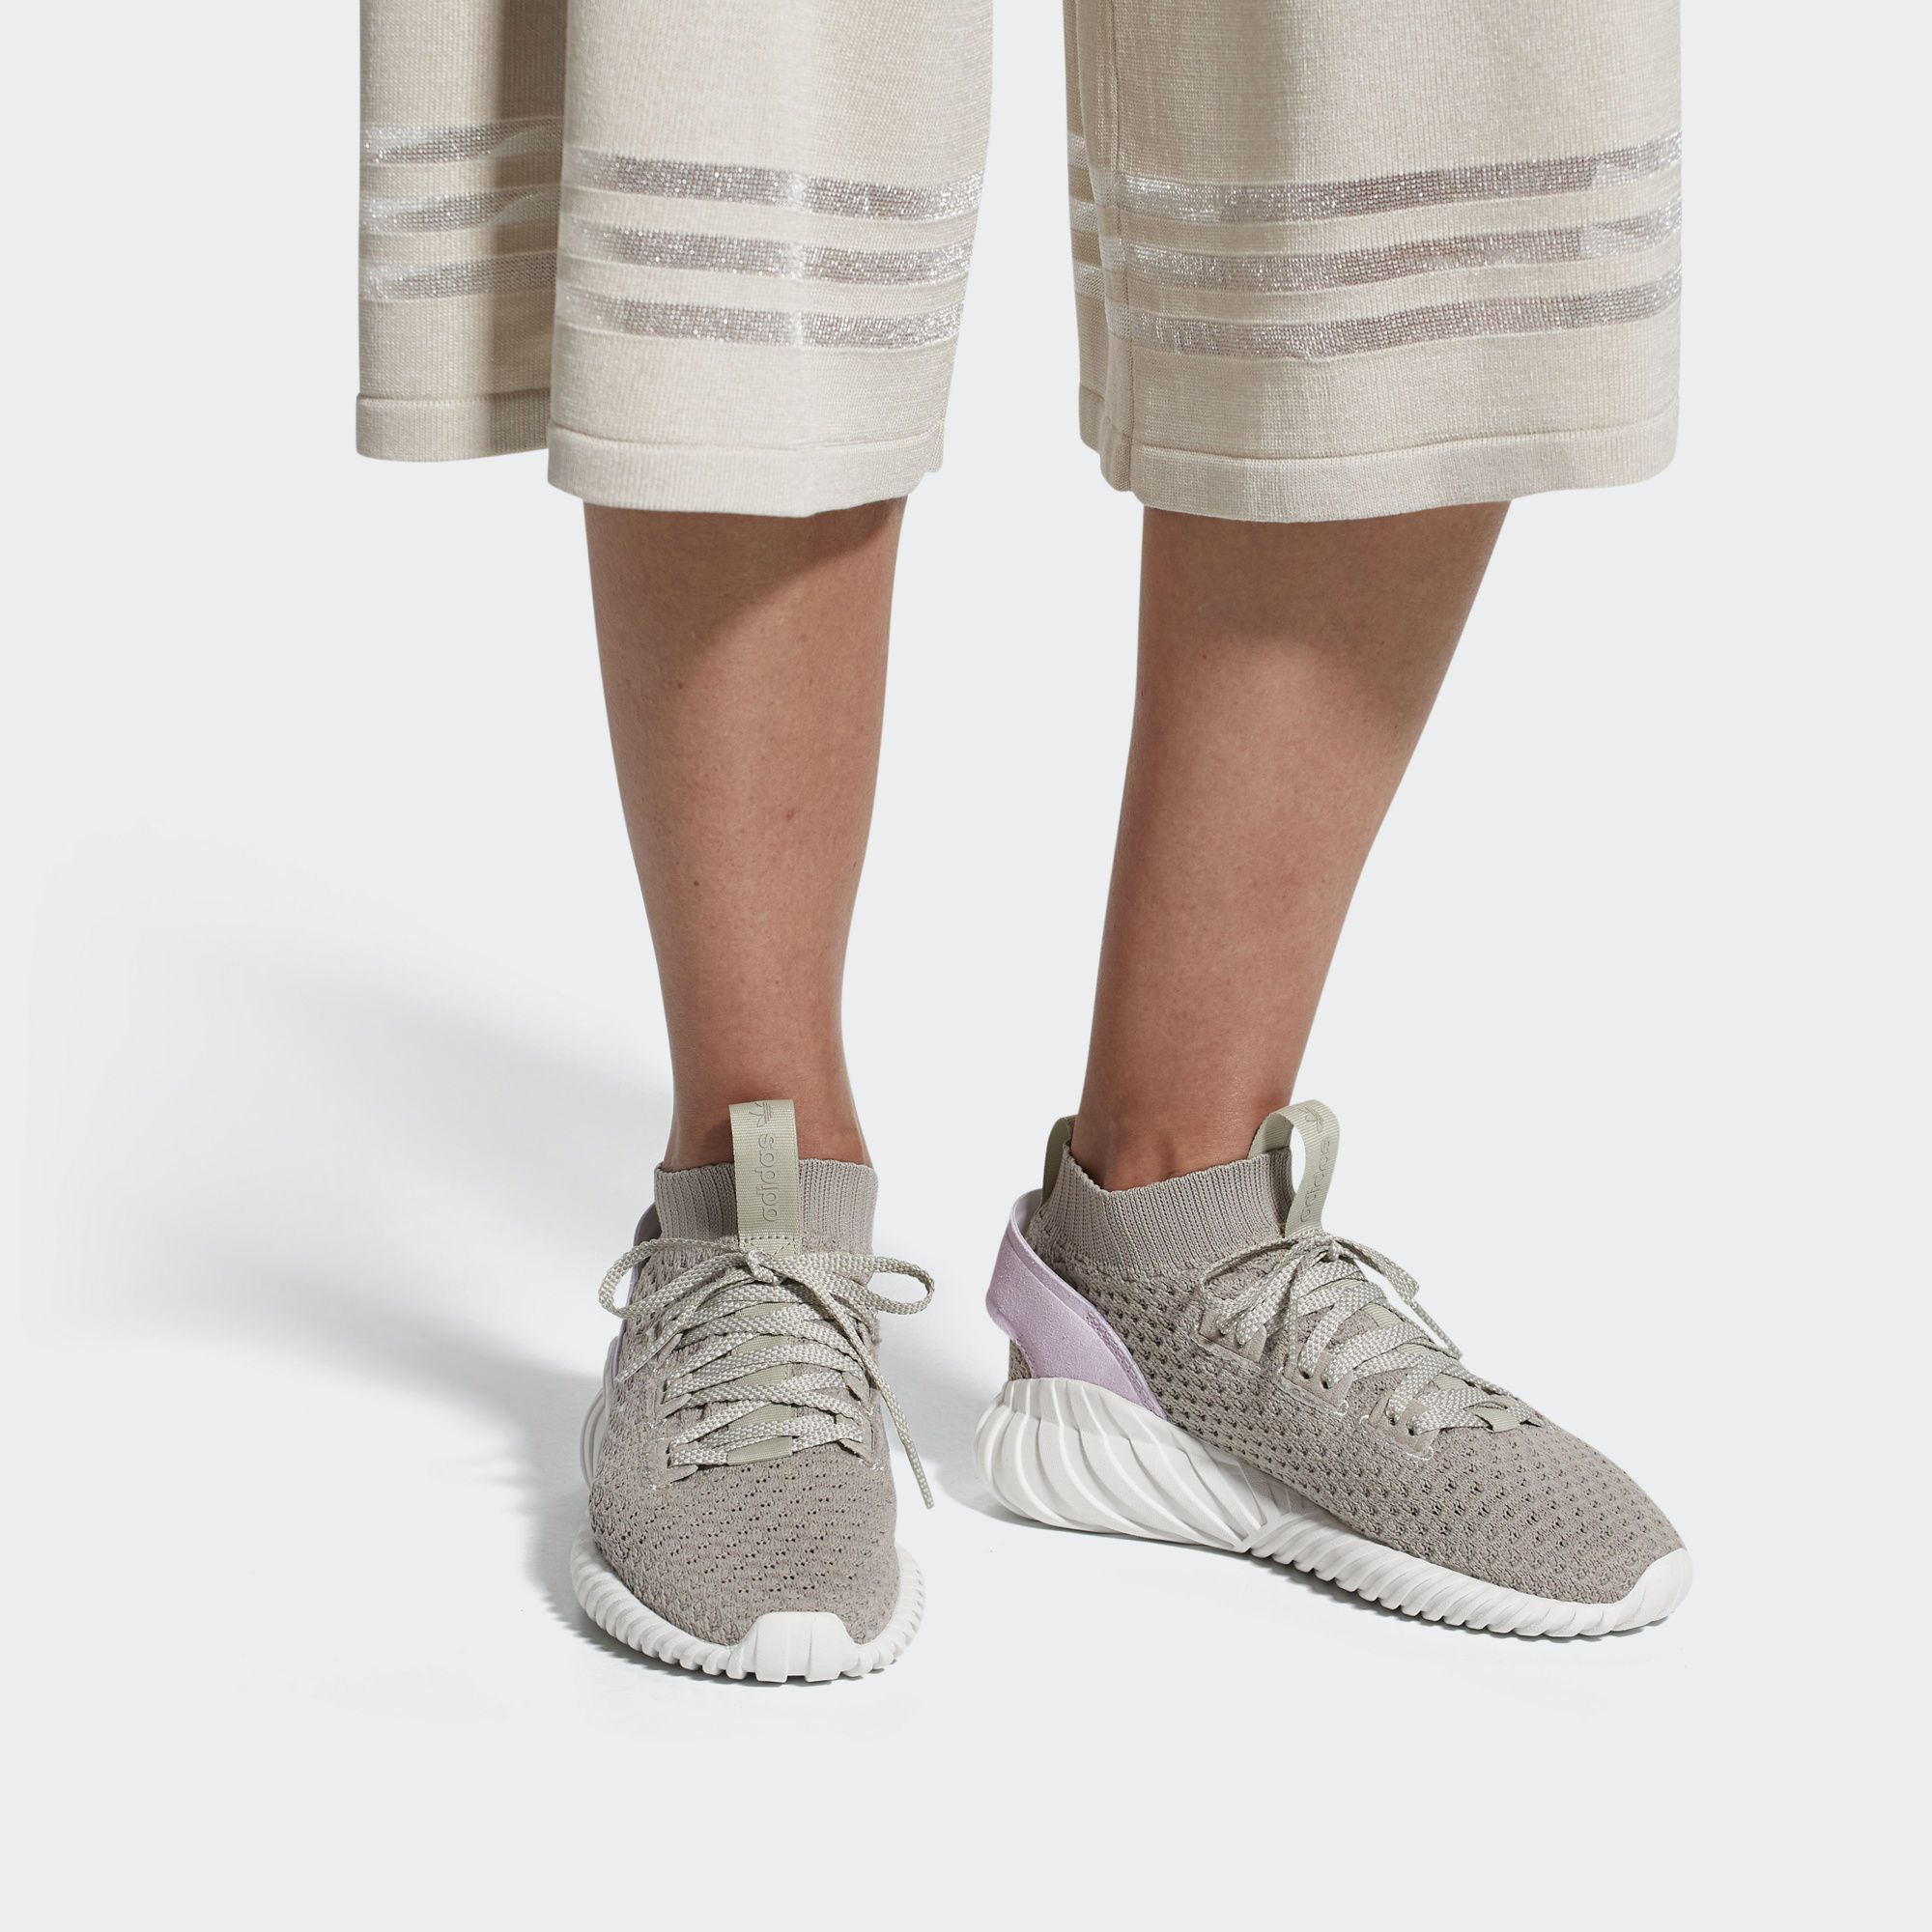 sold worldwide low price sale outlet online ADIDAS ORIGINALS TUBULAR DOOM SOCK PRIMEKNIT LIGHT BROWN ...